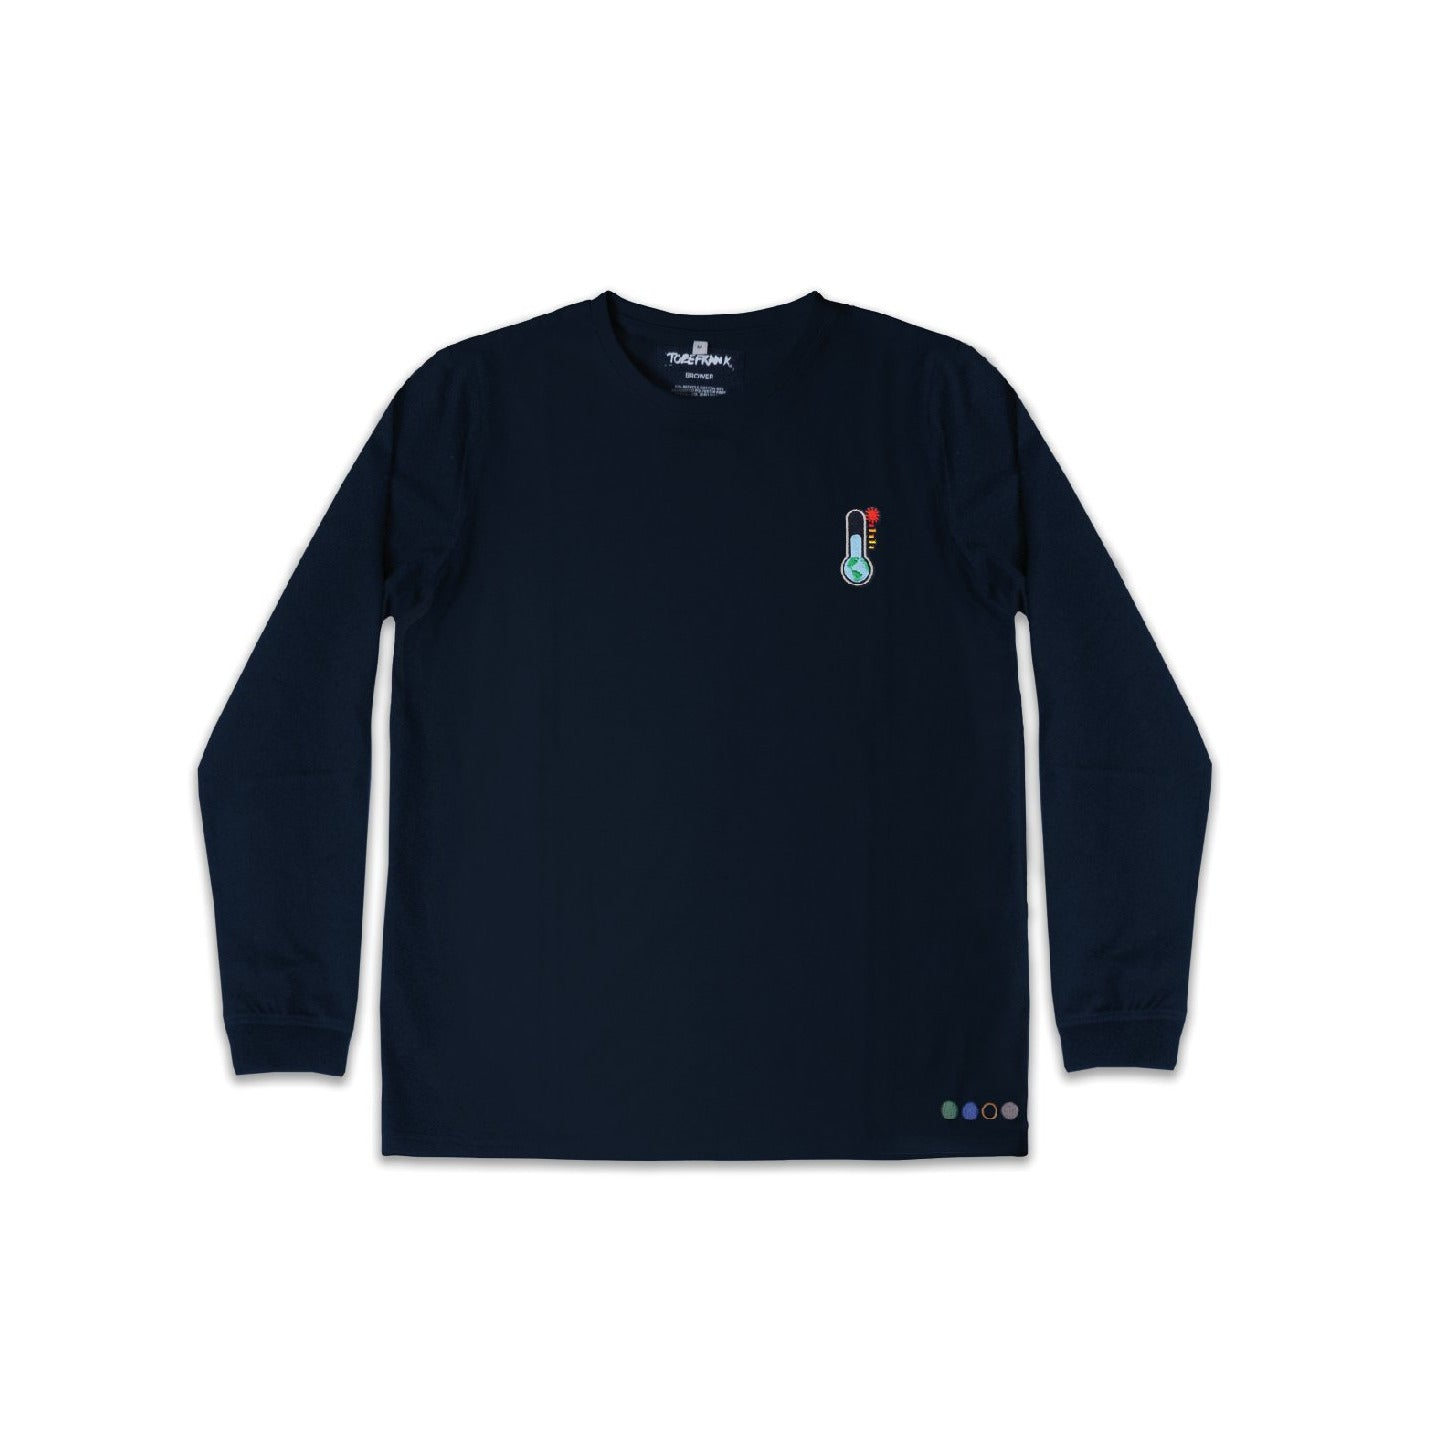 CLIMATE UNISEX SAMMY LONG SLEEVE TEE IN NAVY